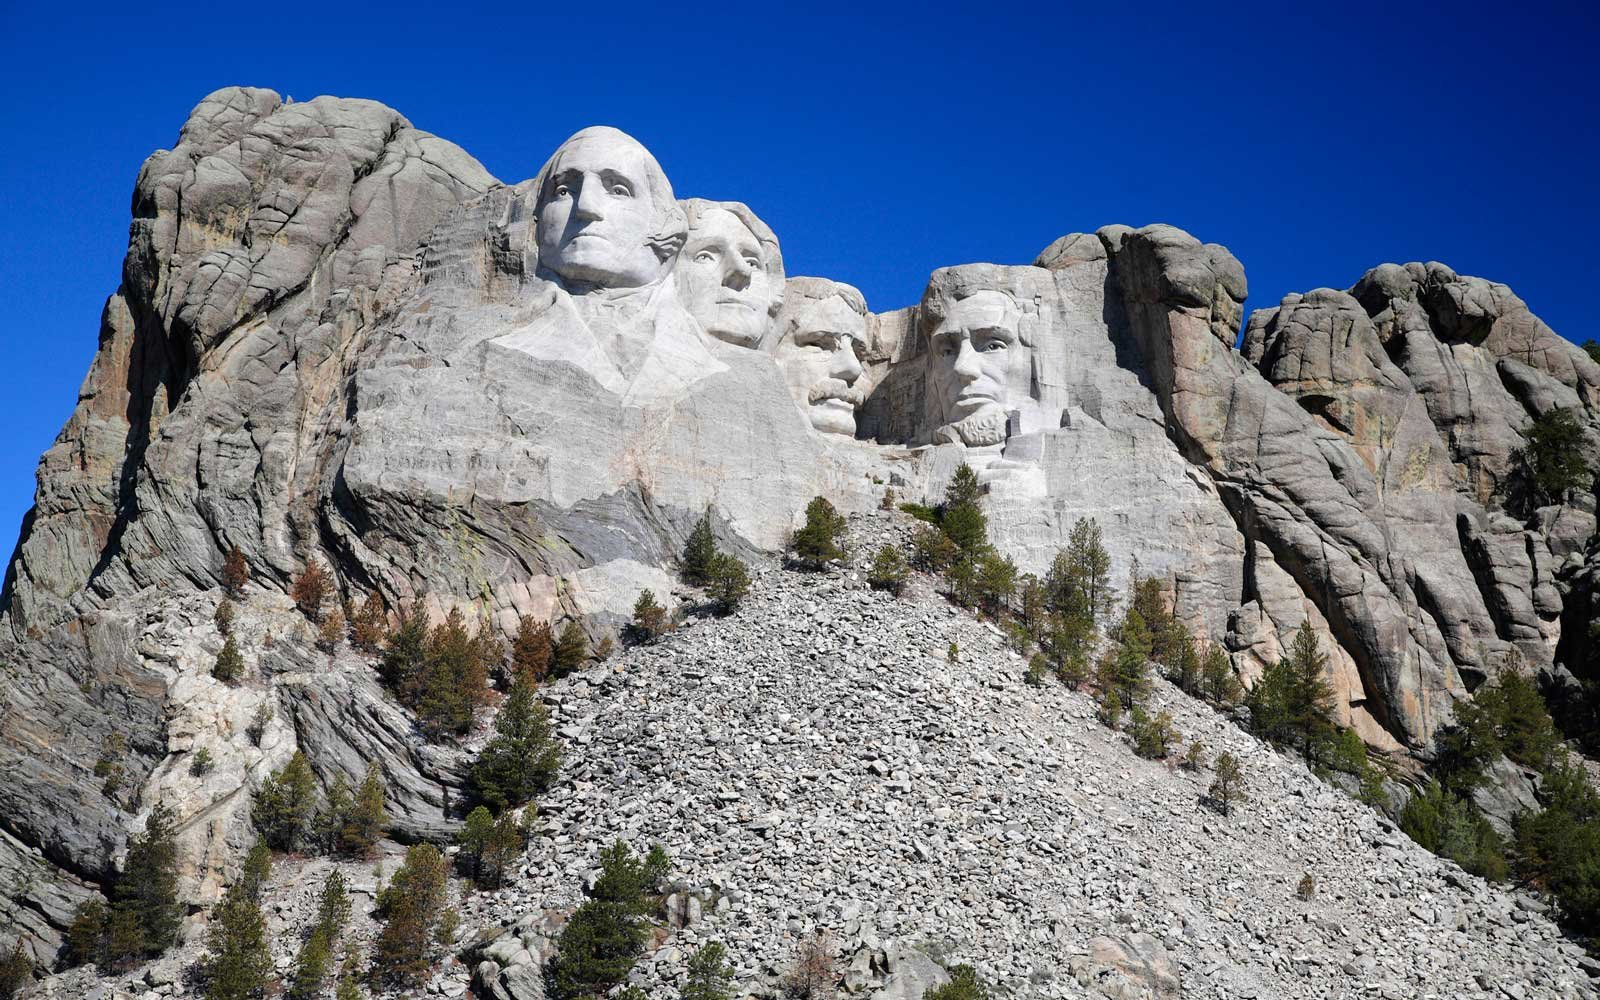 Mount Rushmore on a fine day - seen from the Grand View Terrace 2